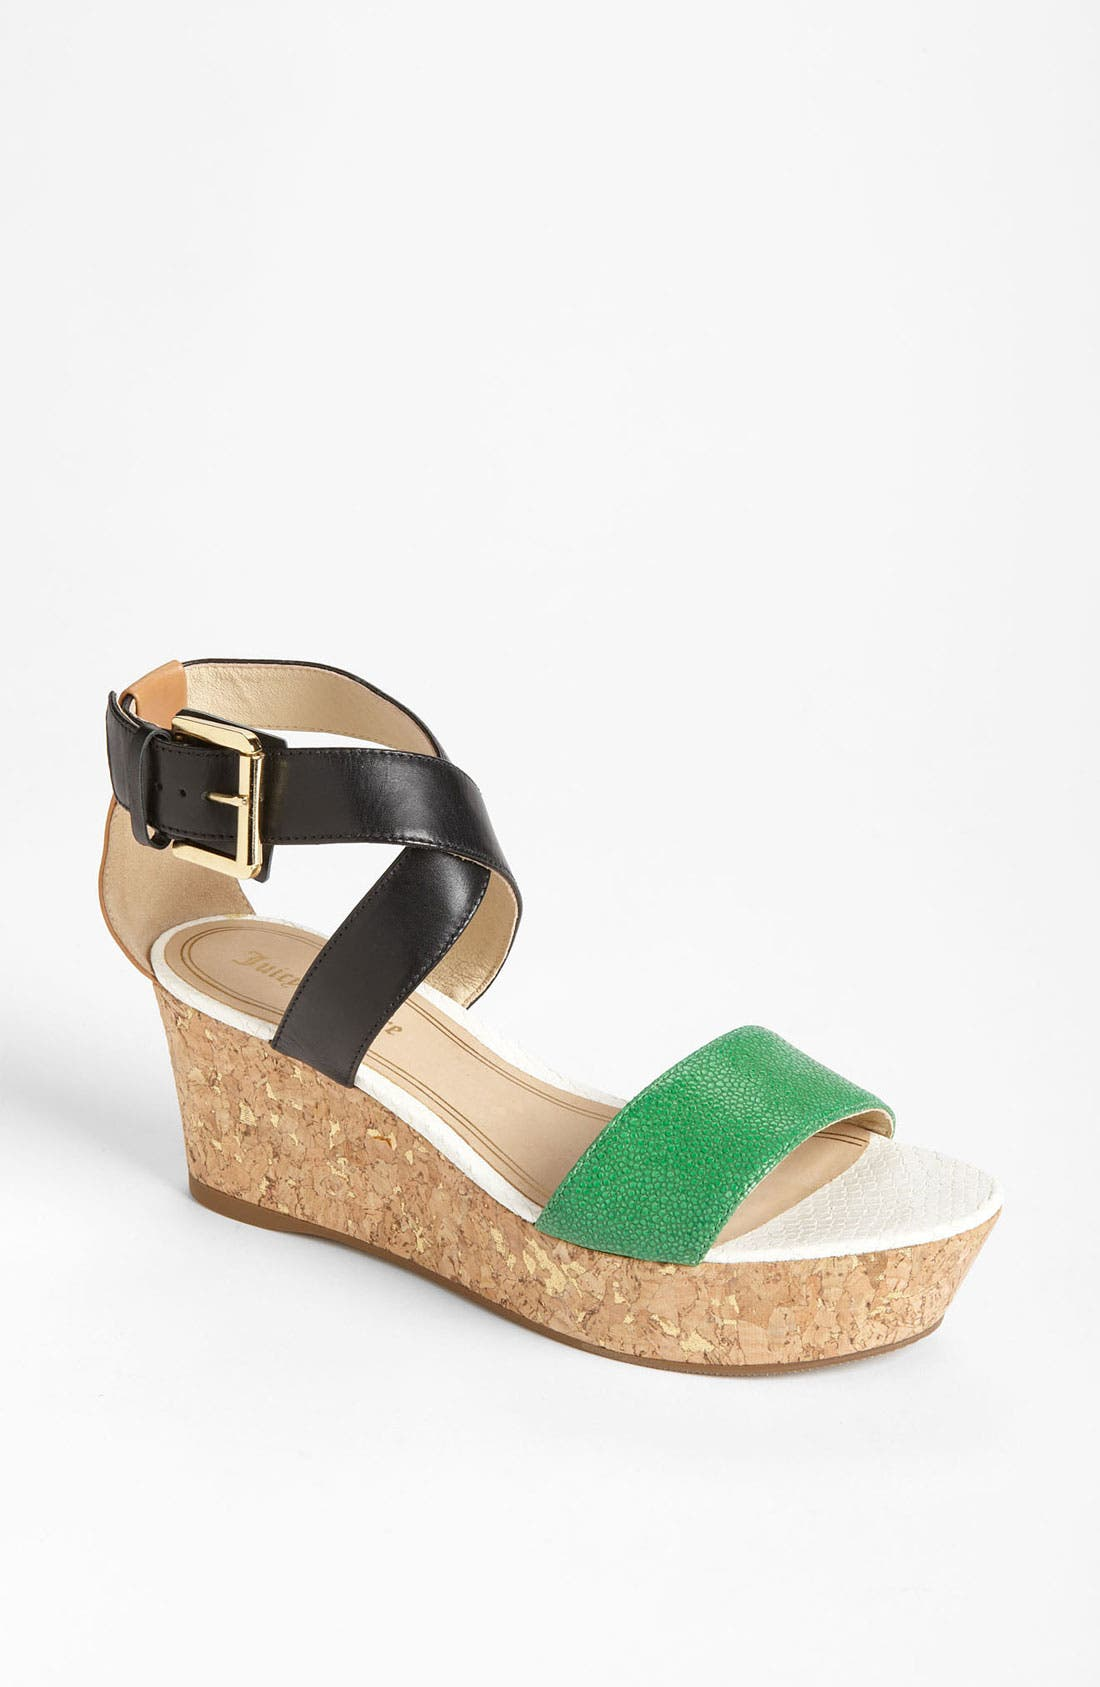 Main Image - Juicy Couture 'Forrest' Sandal